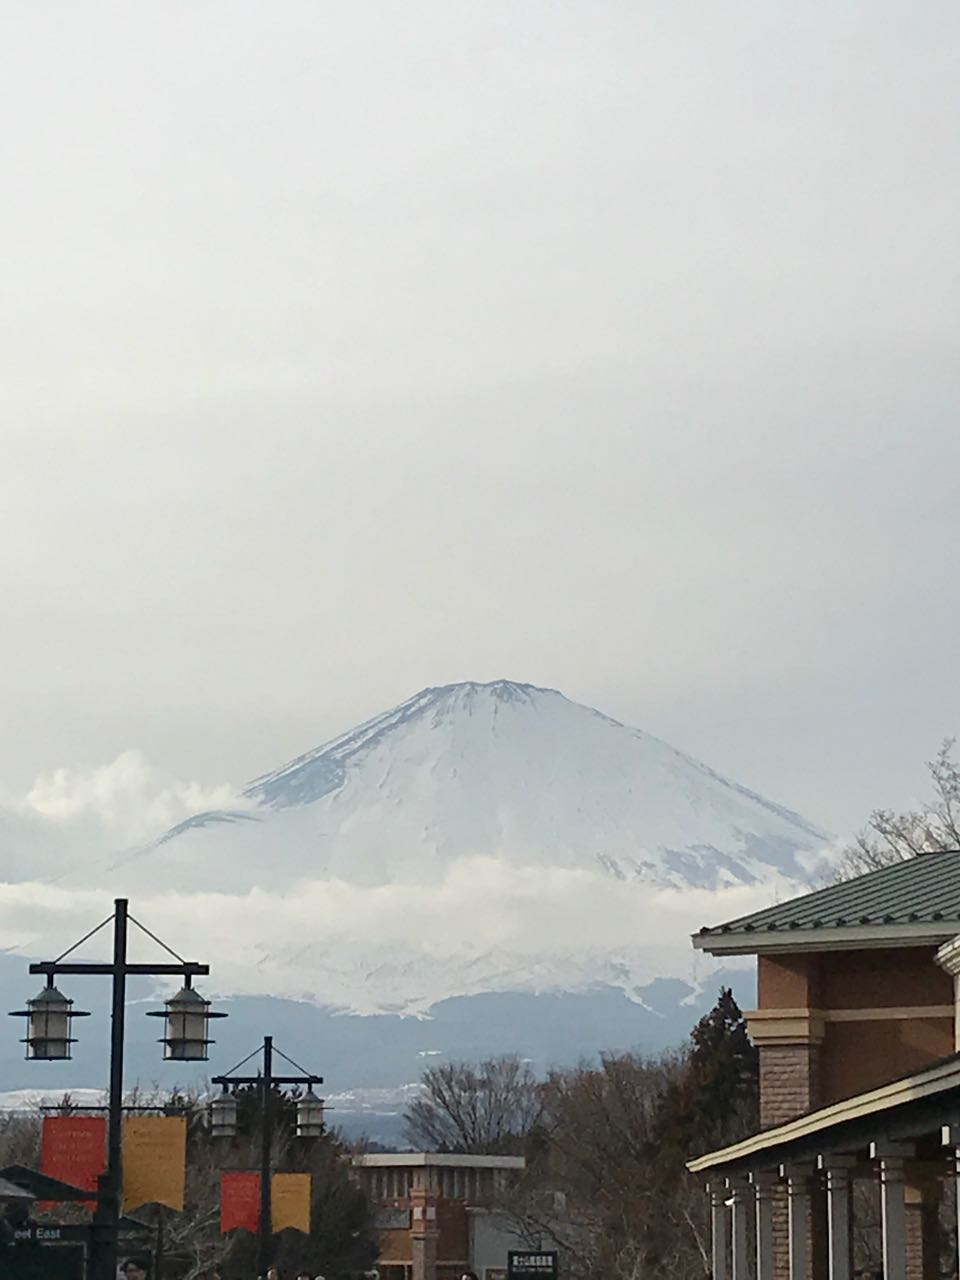 Fuji from outlet mall.jpg